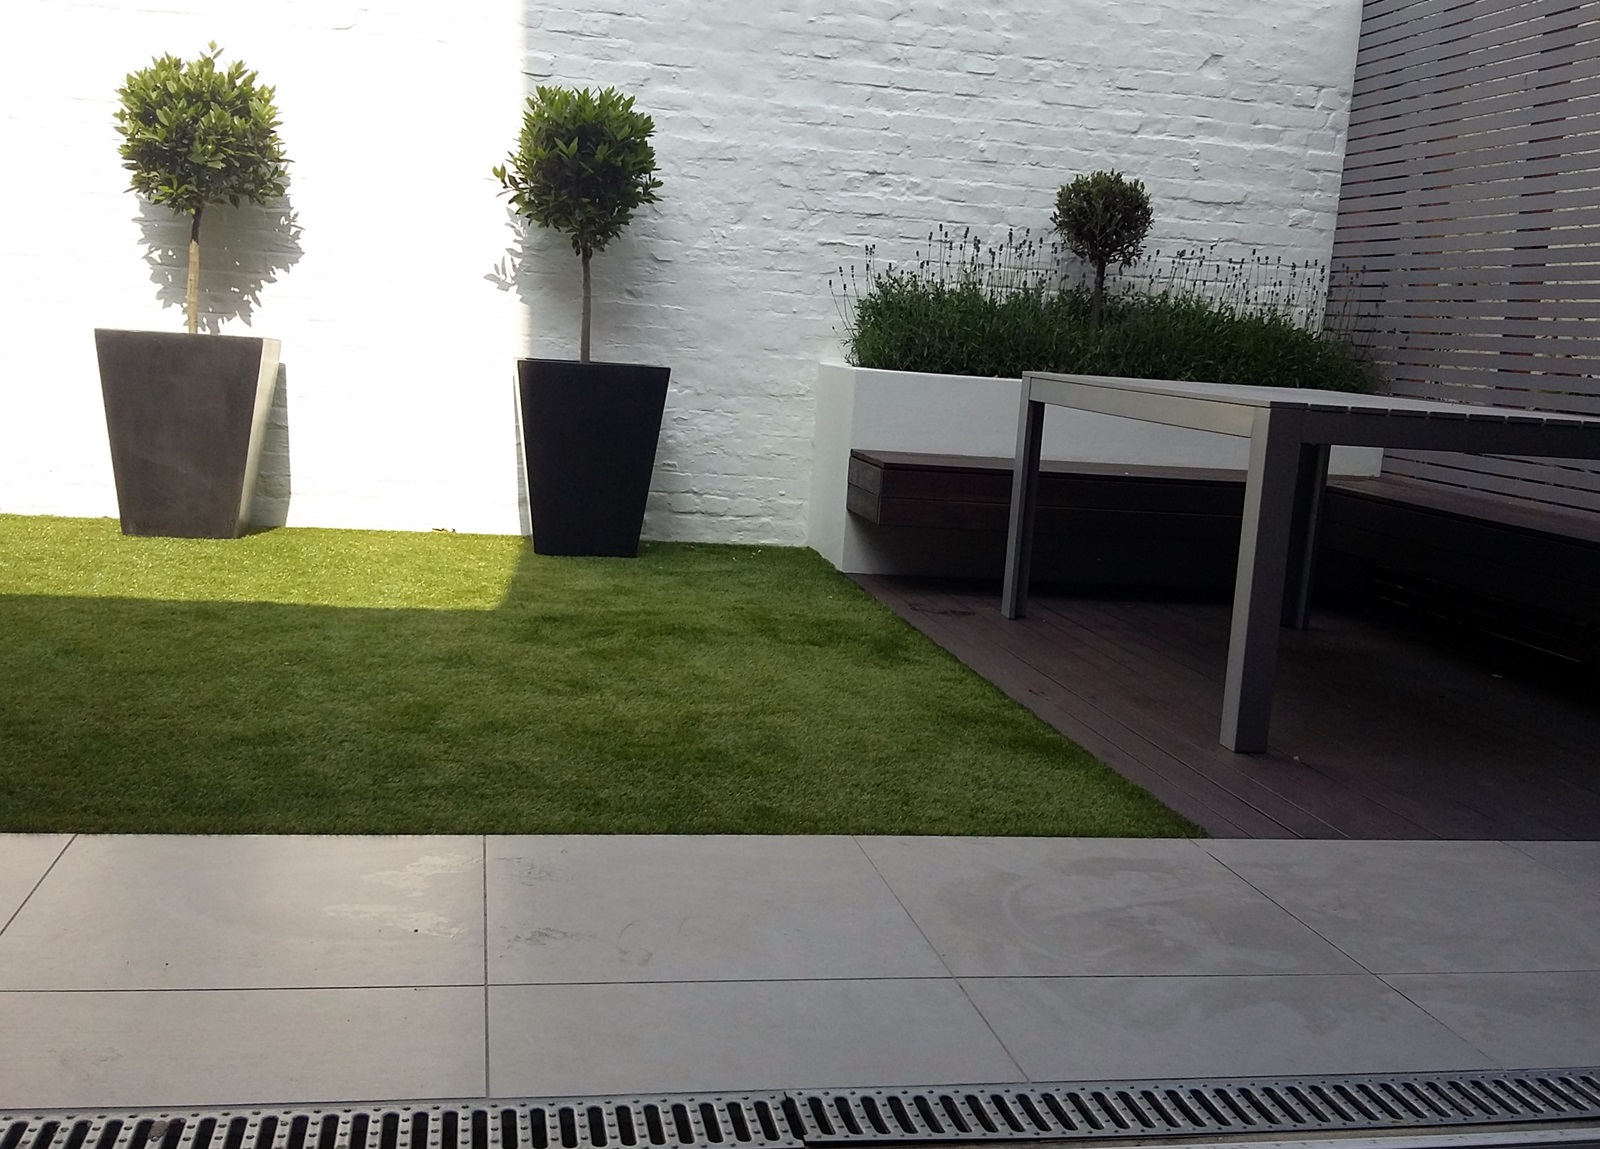 modern courtyard garden design putney and wandsworth london fake grass hardwood decking raised painted beds slatted grey privacy screen trellis